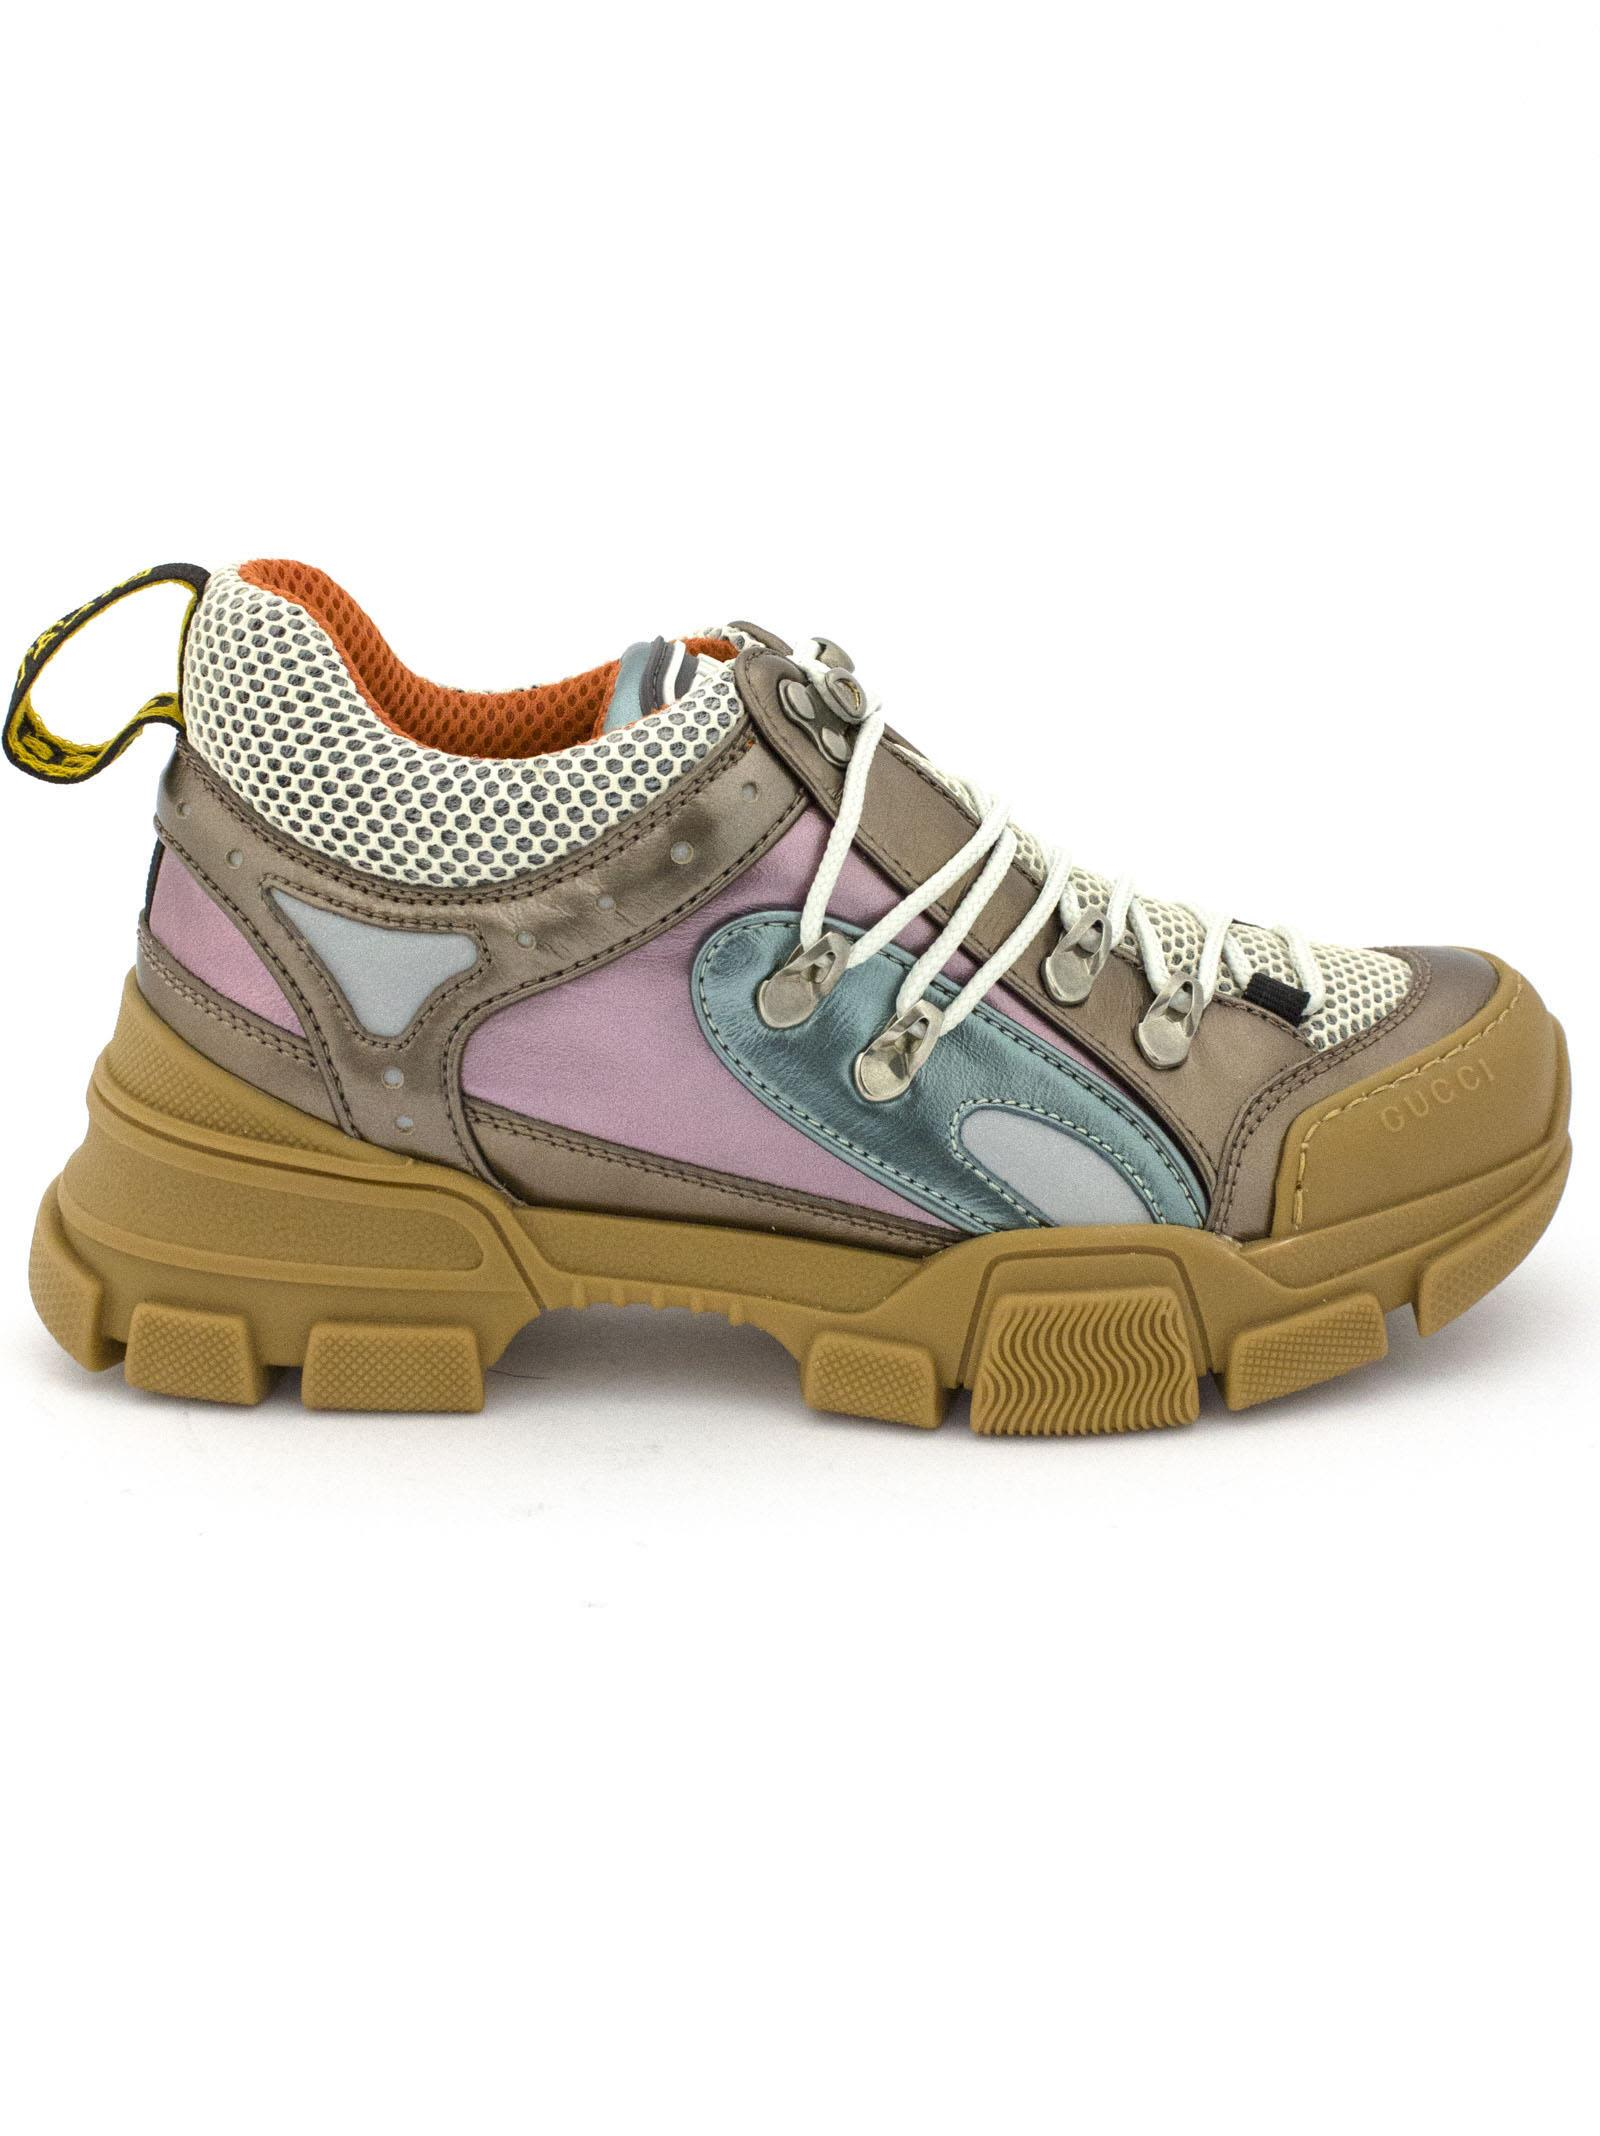 gucci -  Flashtrek Sneaker In Gold, Blue And Pink Metallic Leather.